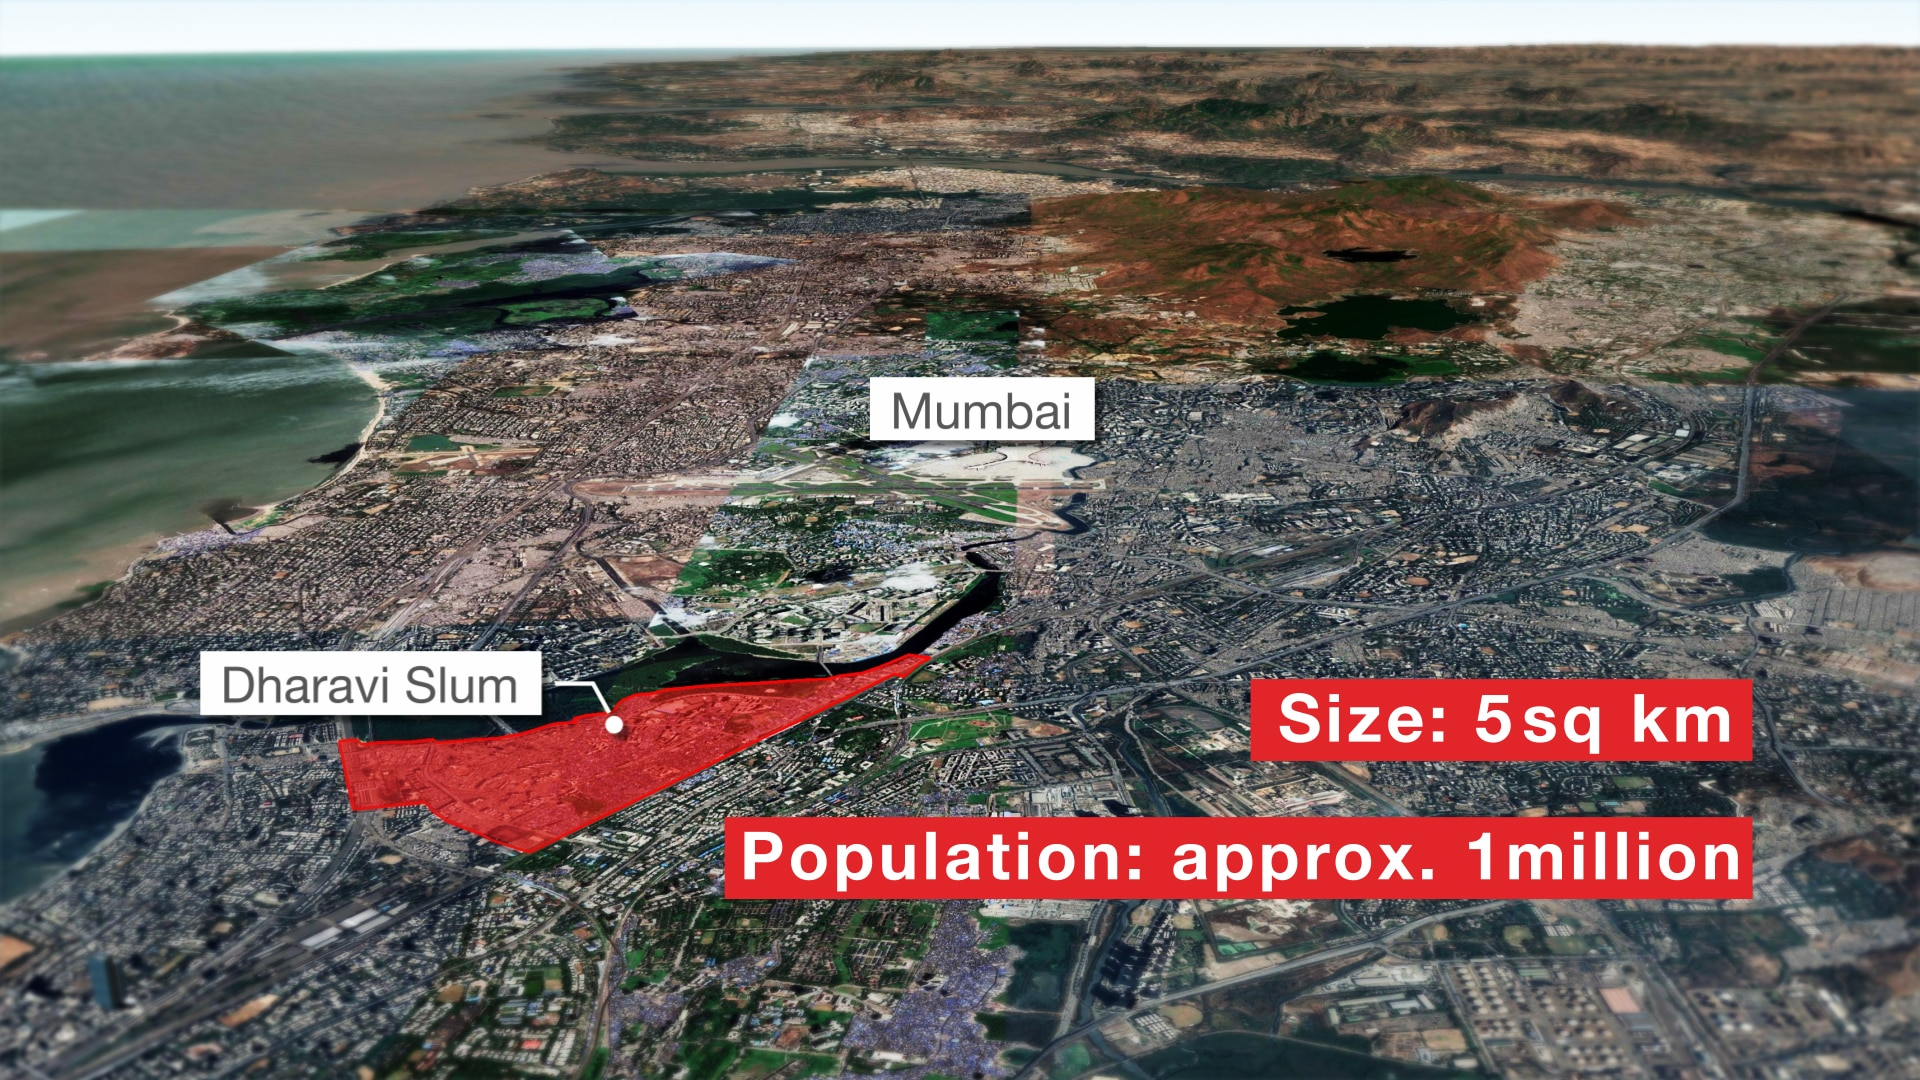 A look at Dharavi slum in Mumbai, India.